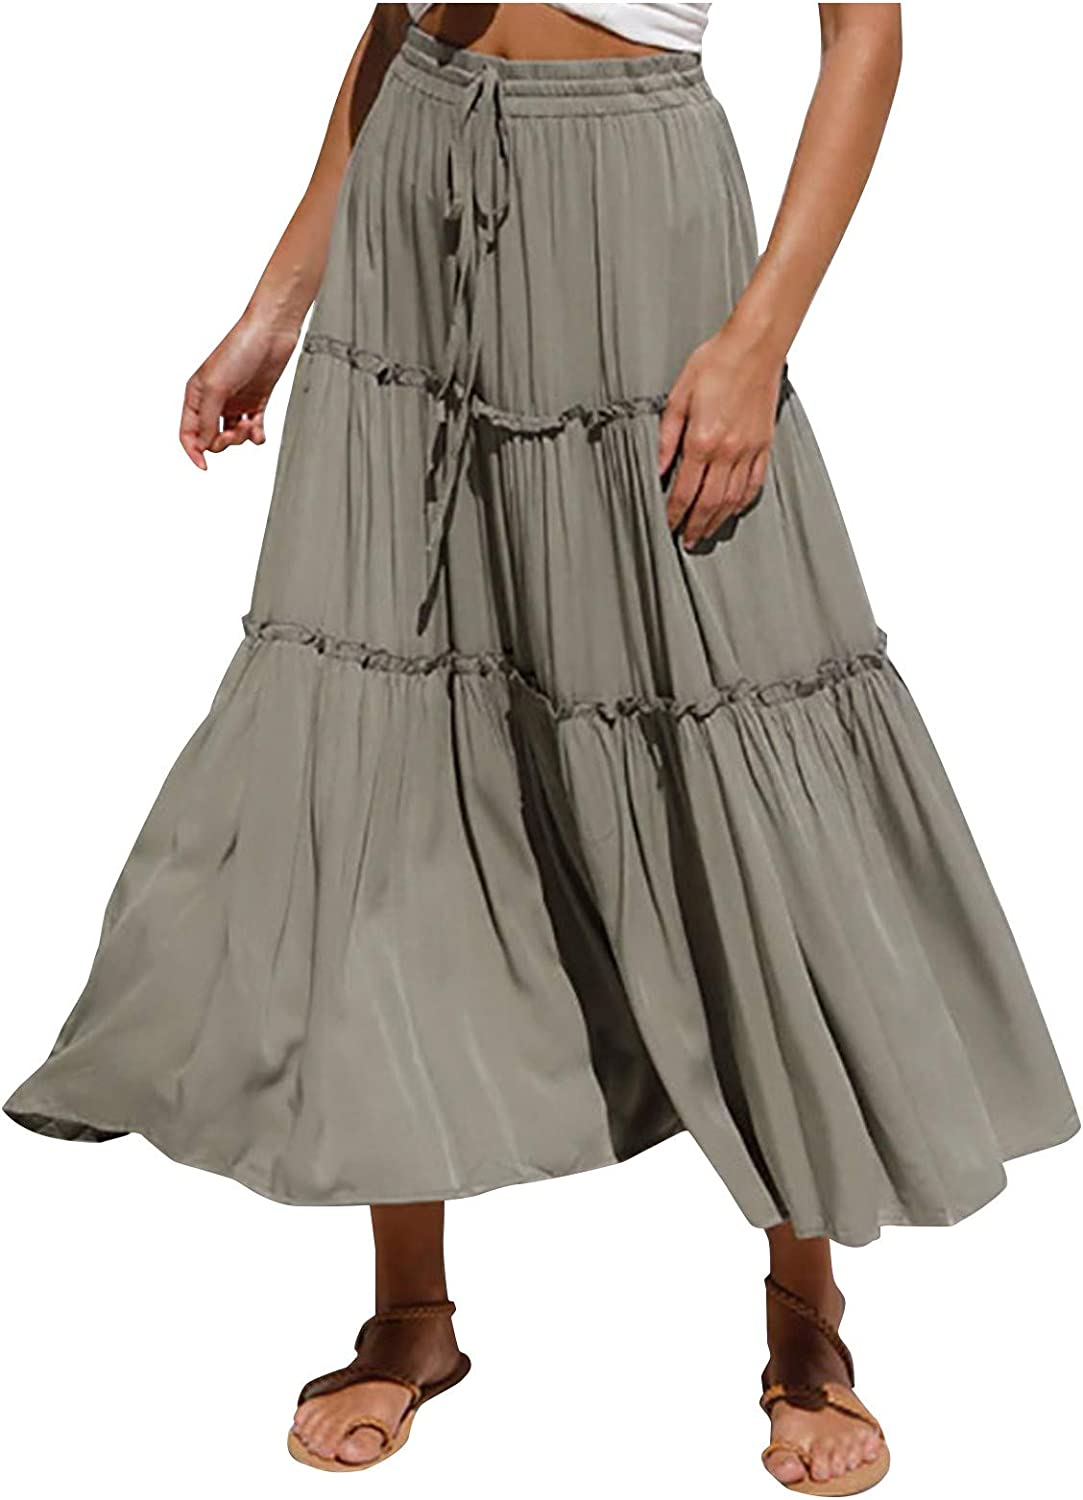 Women's High Waist Casual Fashion Solid Color Simple Pleated Irregular Skirt